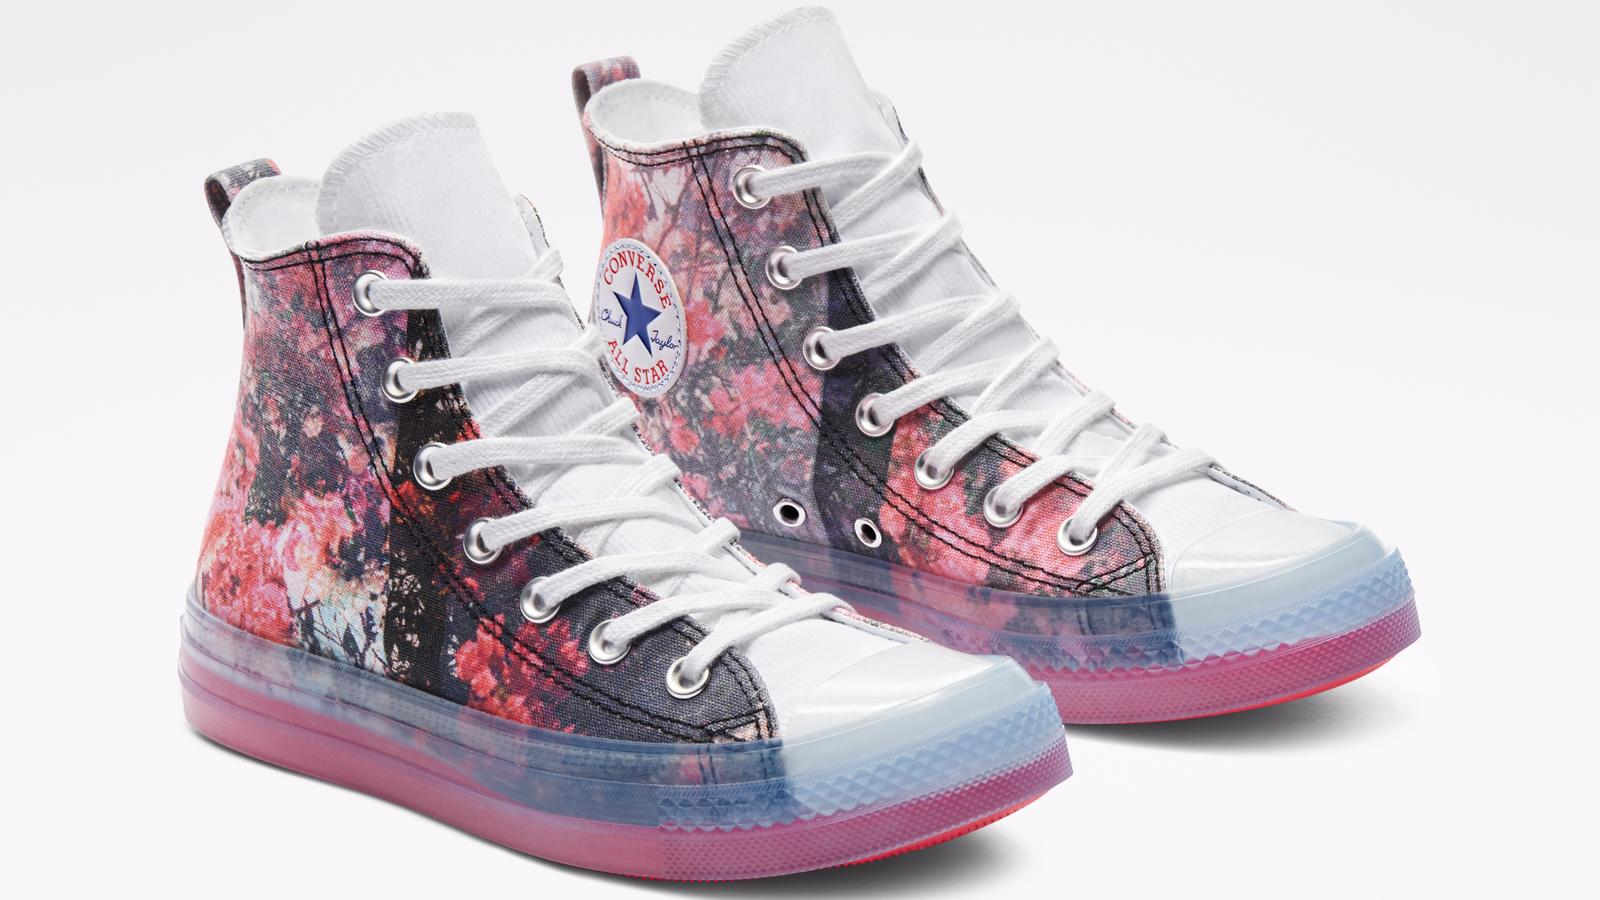 Converse x Shaniqwa Jarvis Chuck Taylor All Star CX and